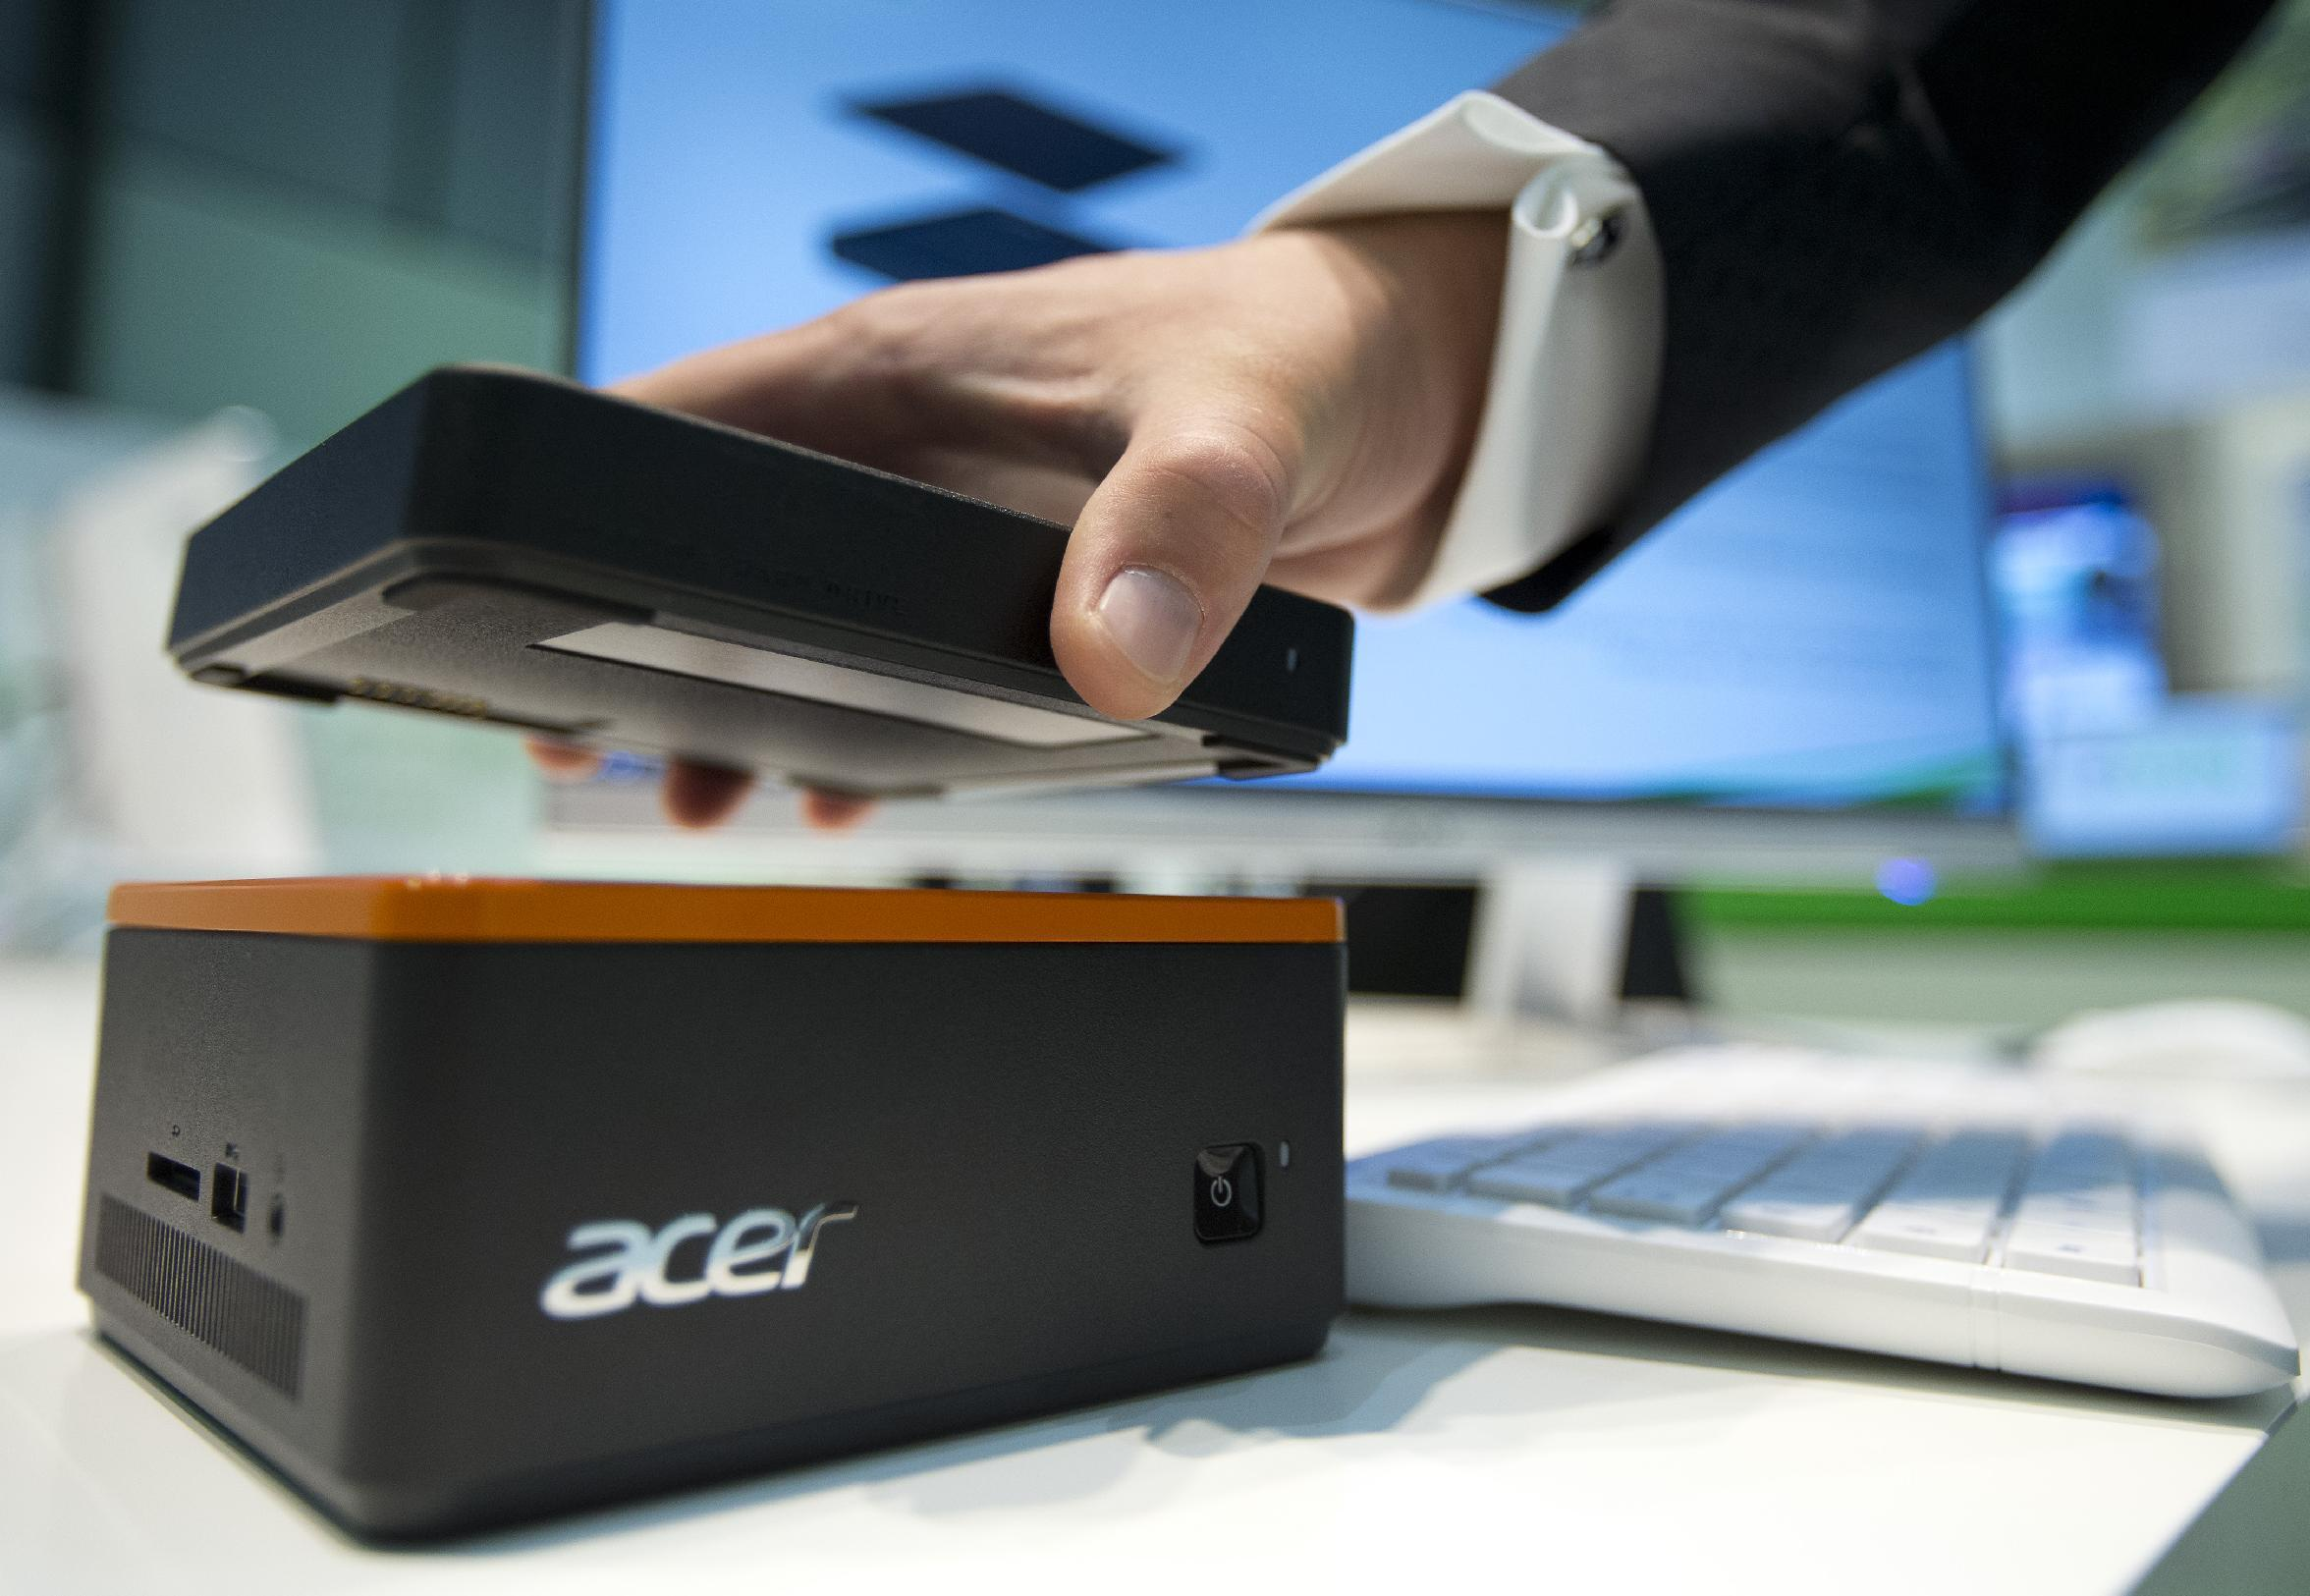 Berlin gadget show: Tiny PCs and high-end handsets